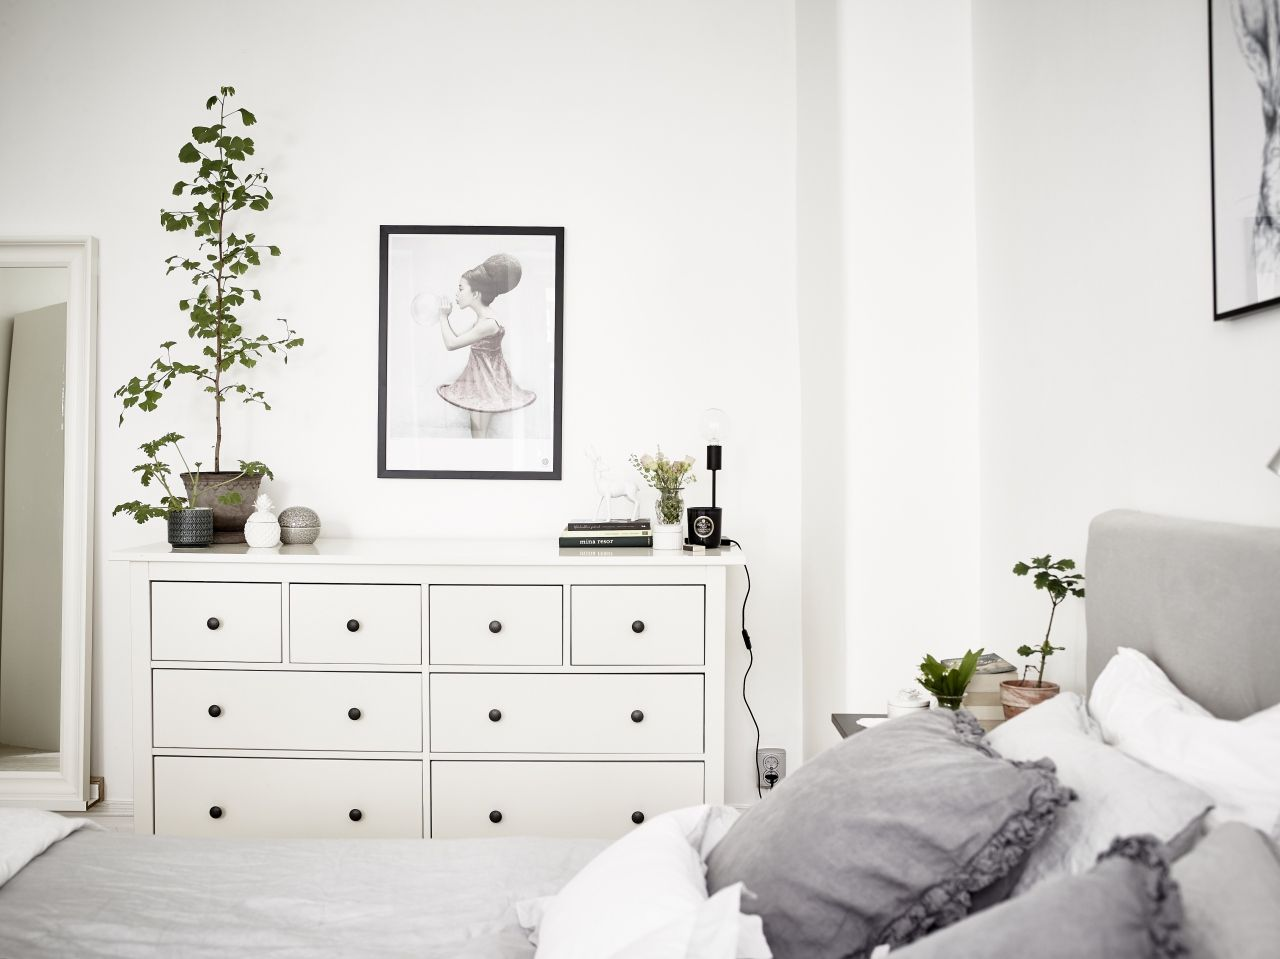 All white bedroom ikea - 12 Best Ikea Interior Design Finds